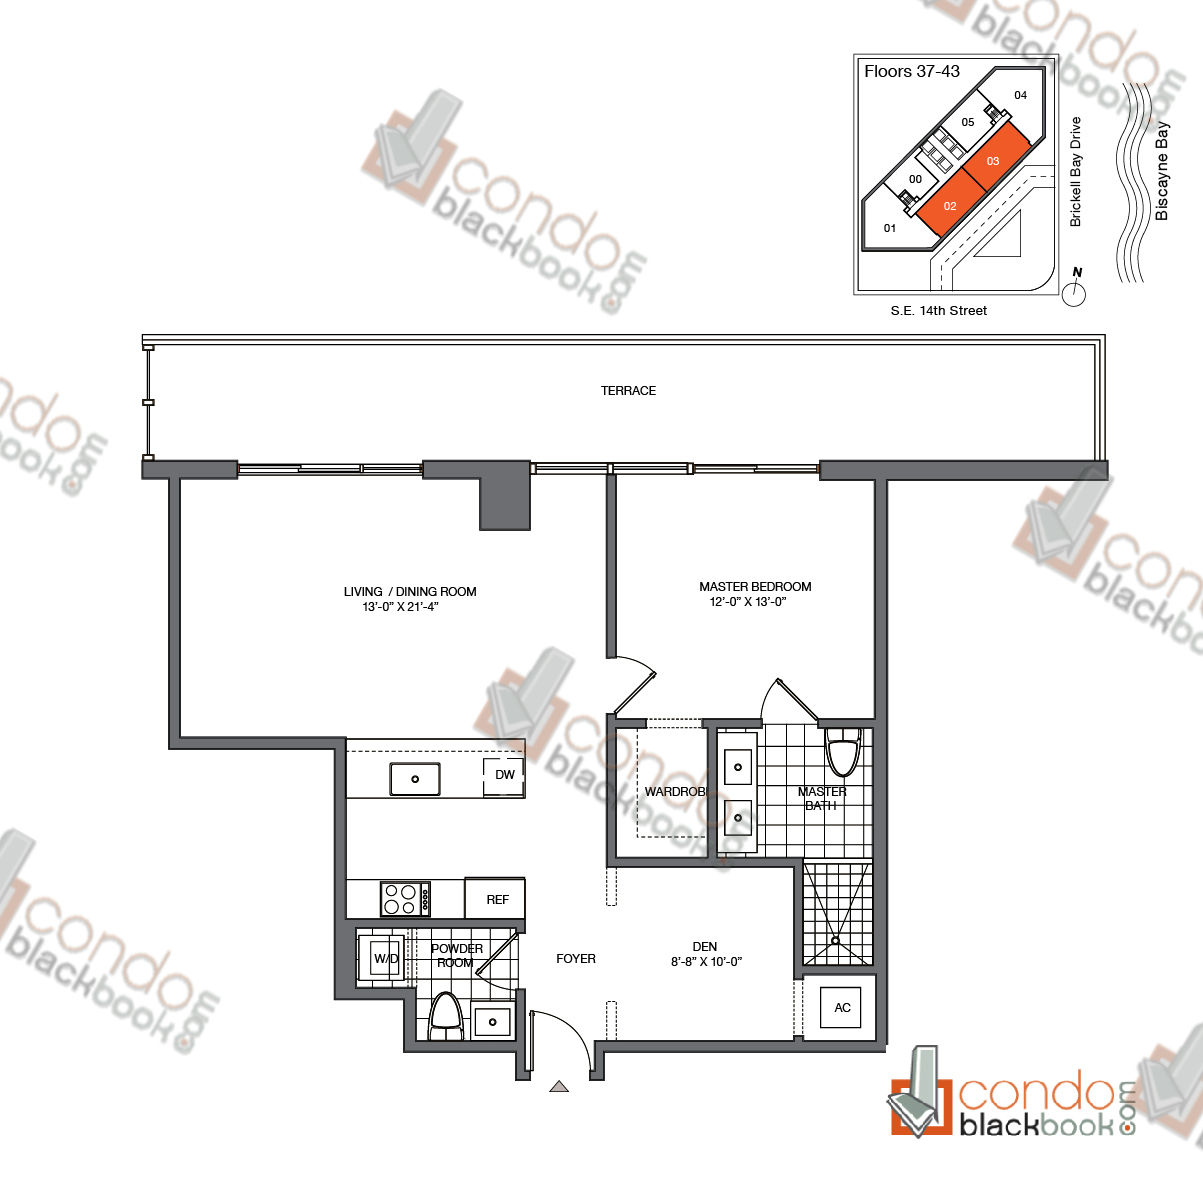 Floor plan for Brickell House Brickell Miami, model B7_37-43, line 02, 03, 2/3 + Den bedrooms, 1,775 sq ft